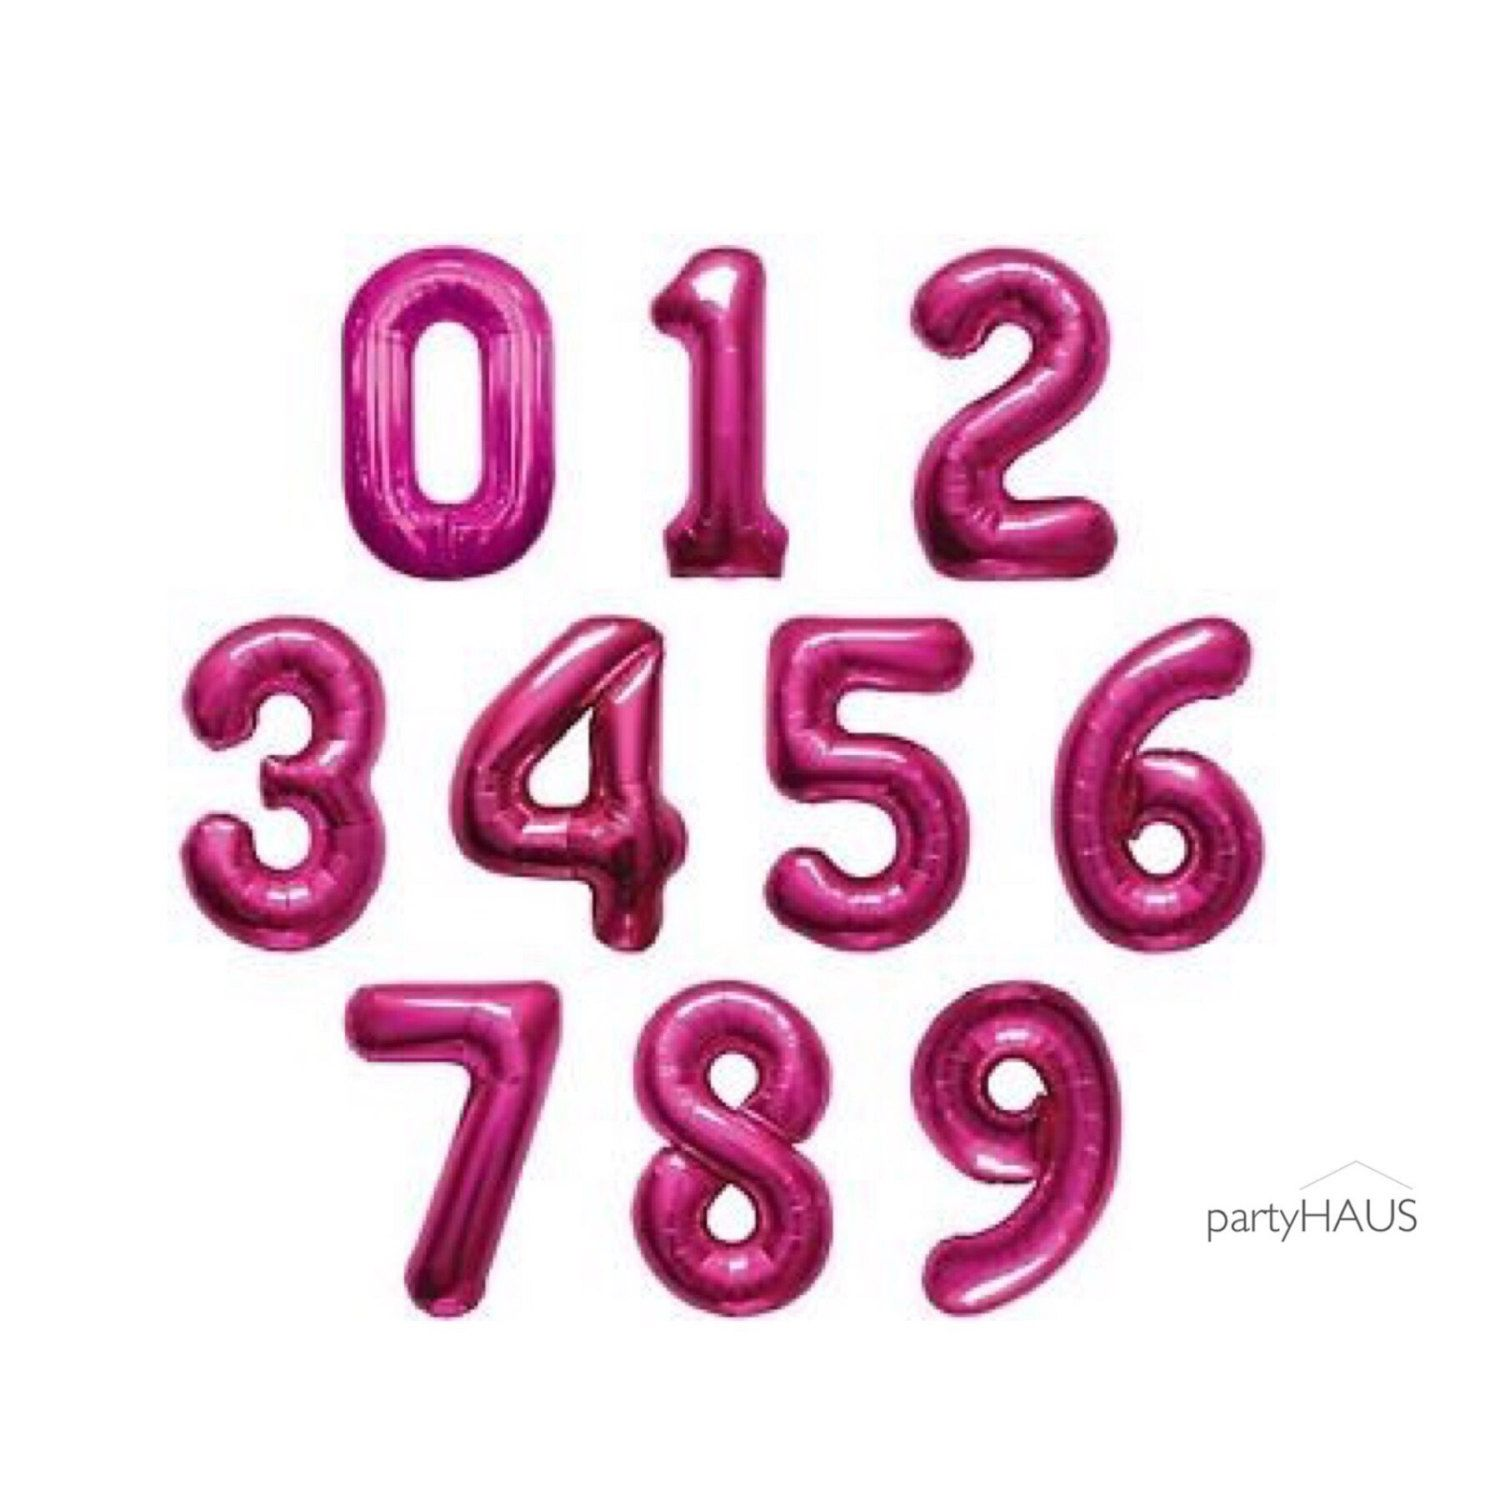 Photo of Pink Number Balloons, 13.5 or 34 Inch, Number, 0 1 2 3 4 5 6 7 8 9 Foil, Number Balloon, Birthday Party, Photo Shoot, Decoration, Milestone